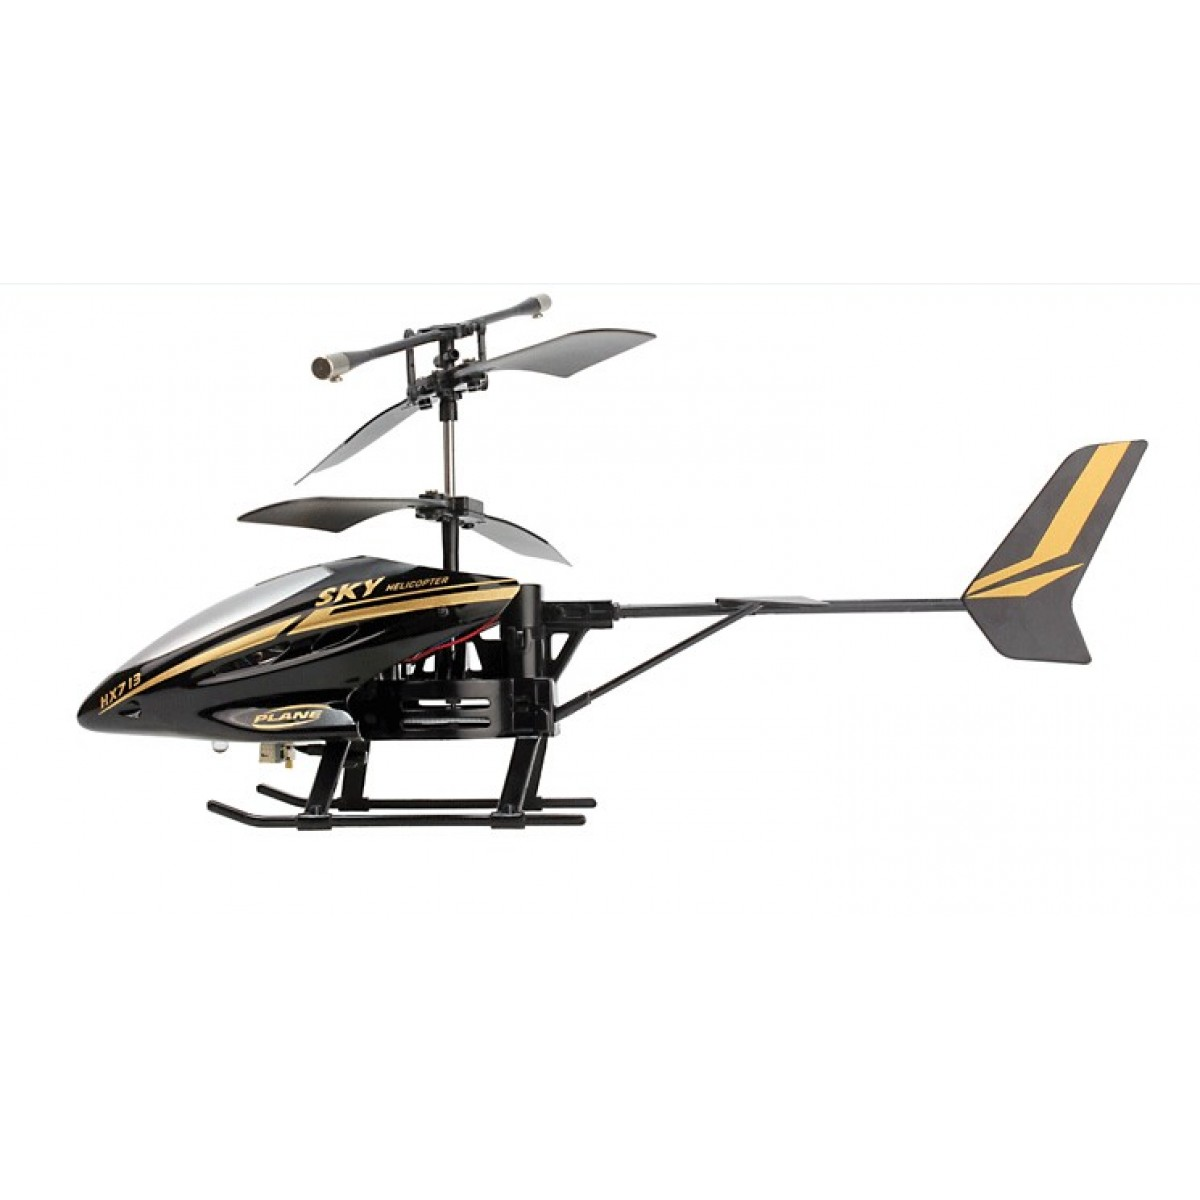 Cheap RC Helicopter Airplane Model Toy 713 Sale Online with